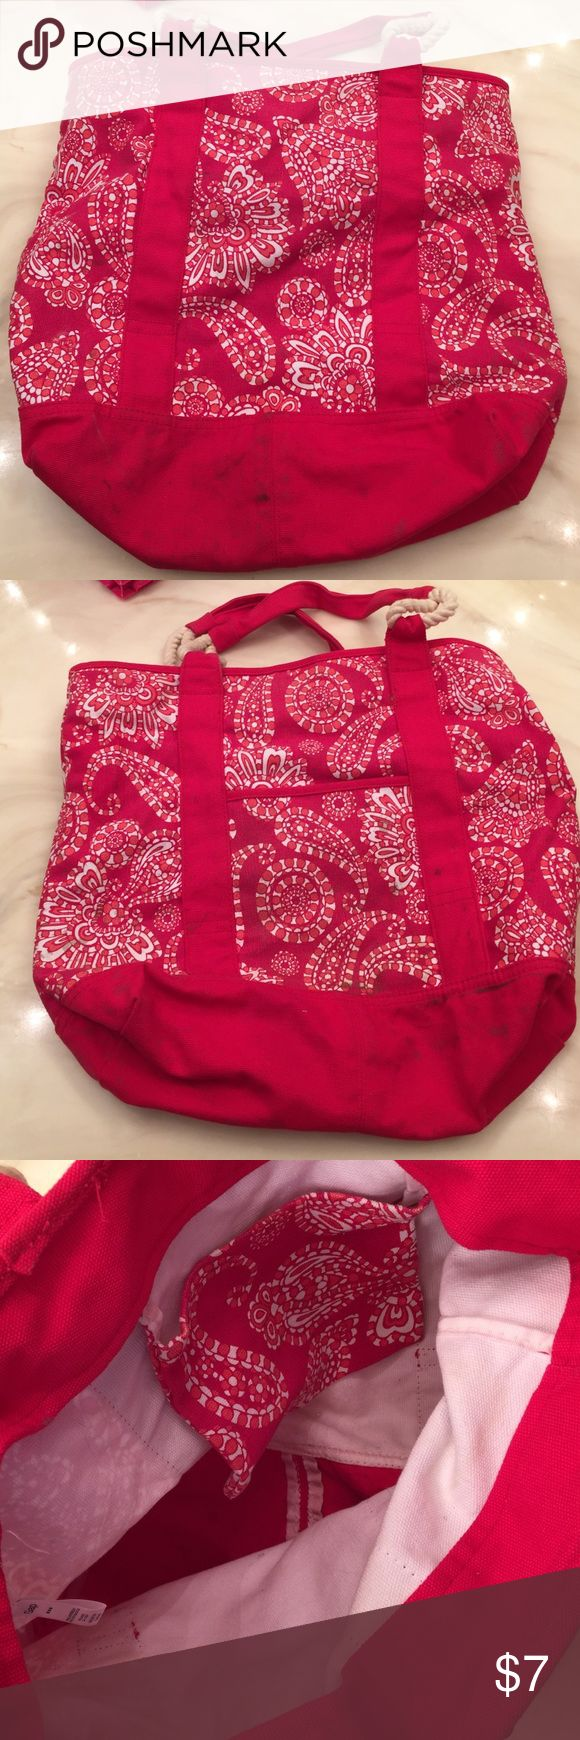 Gap tote Red gap tote. See pictures for stains. Otherwise good condition. GAP Bags Totes